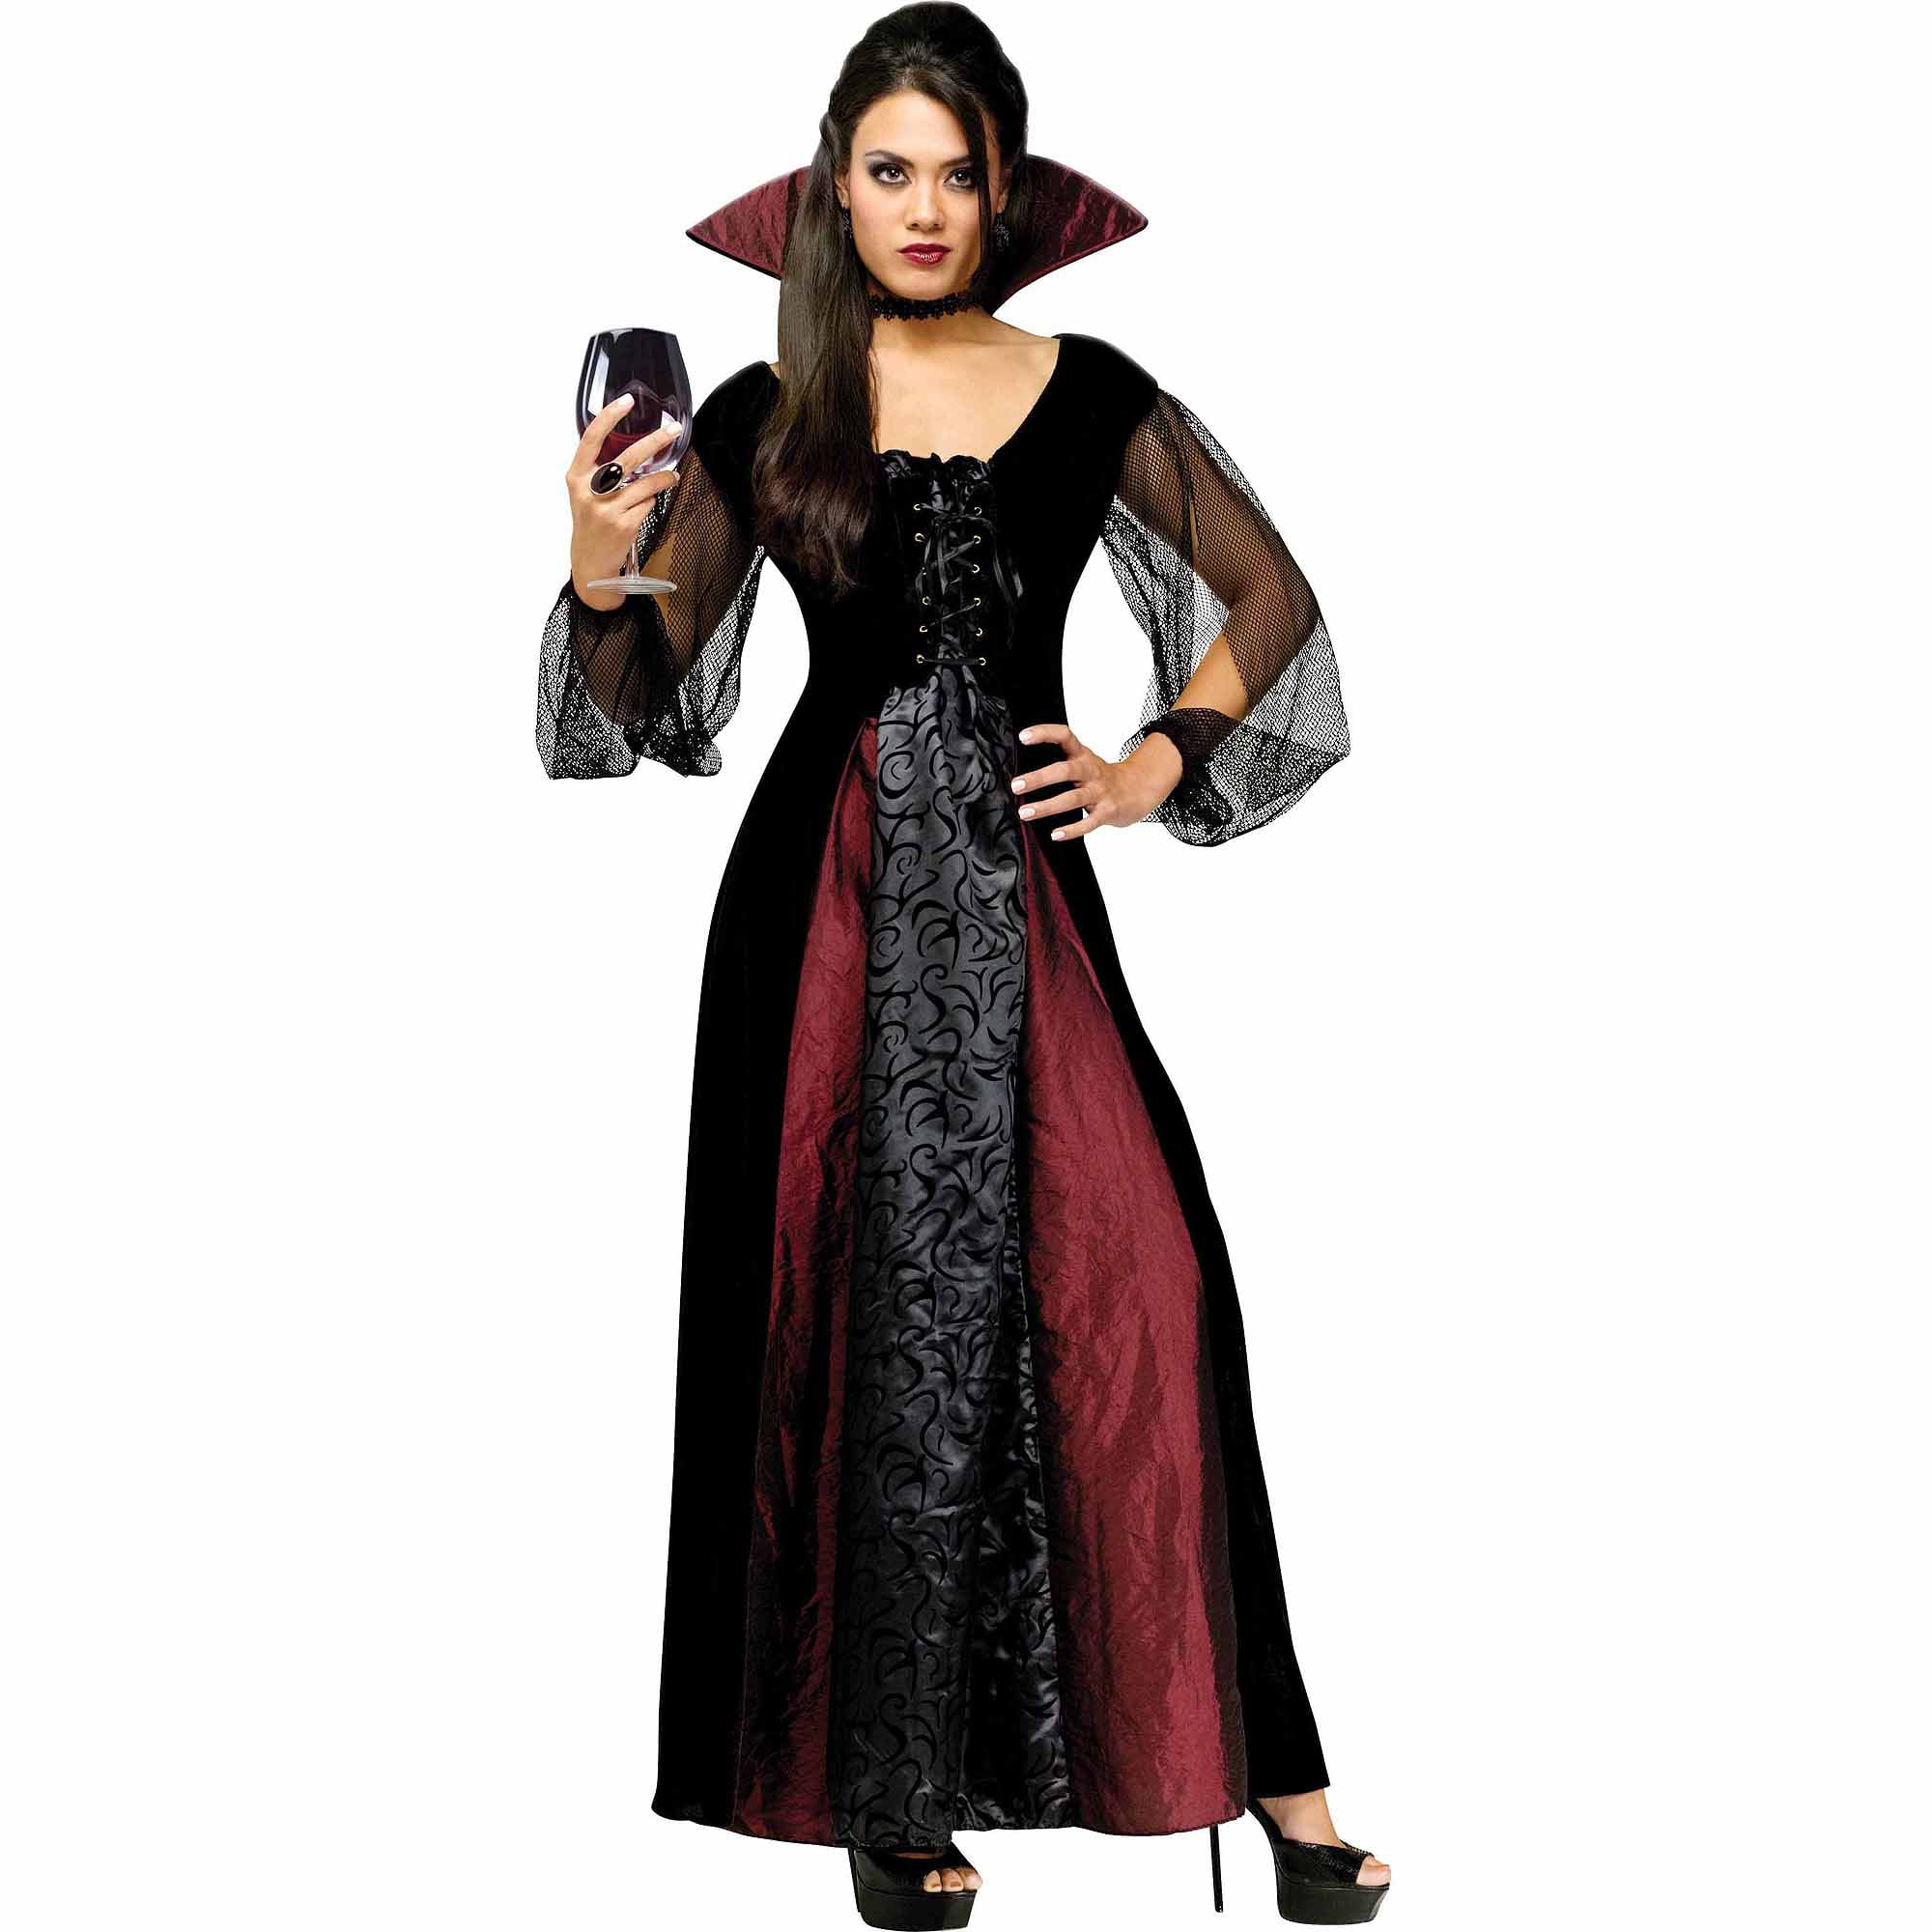 sc 1 st  Walmart & Fun World Gothic Maiden Vampiress Adult Halloween Costume - Walmart.com